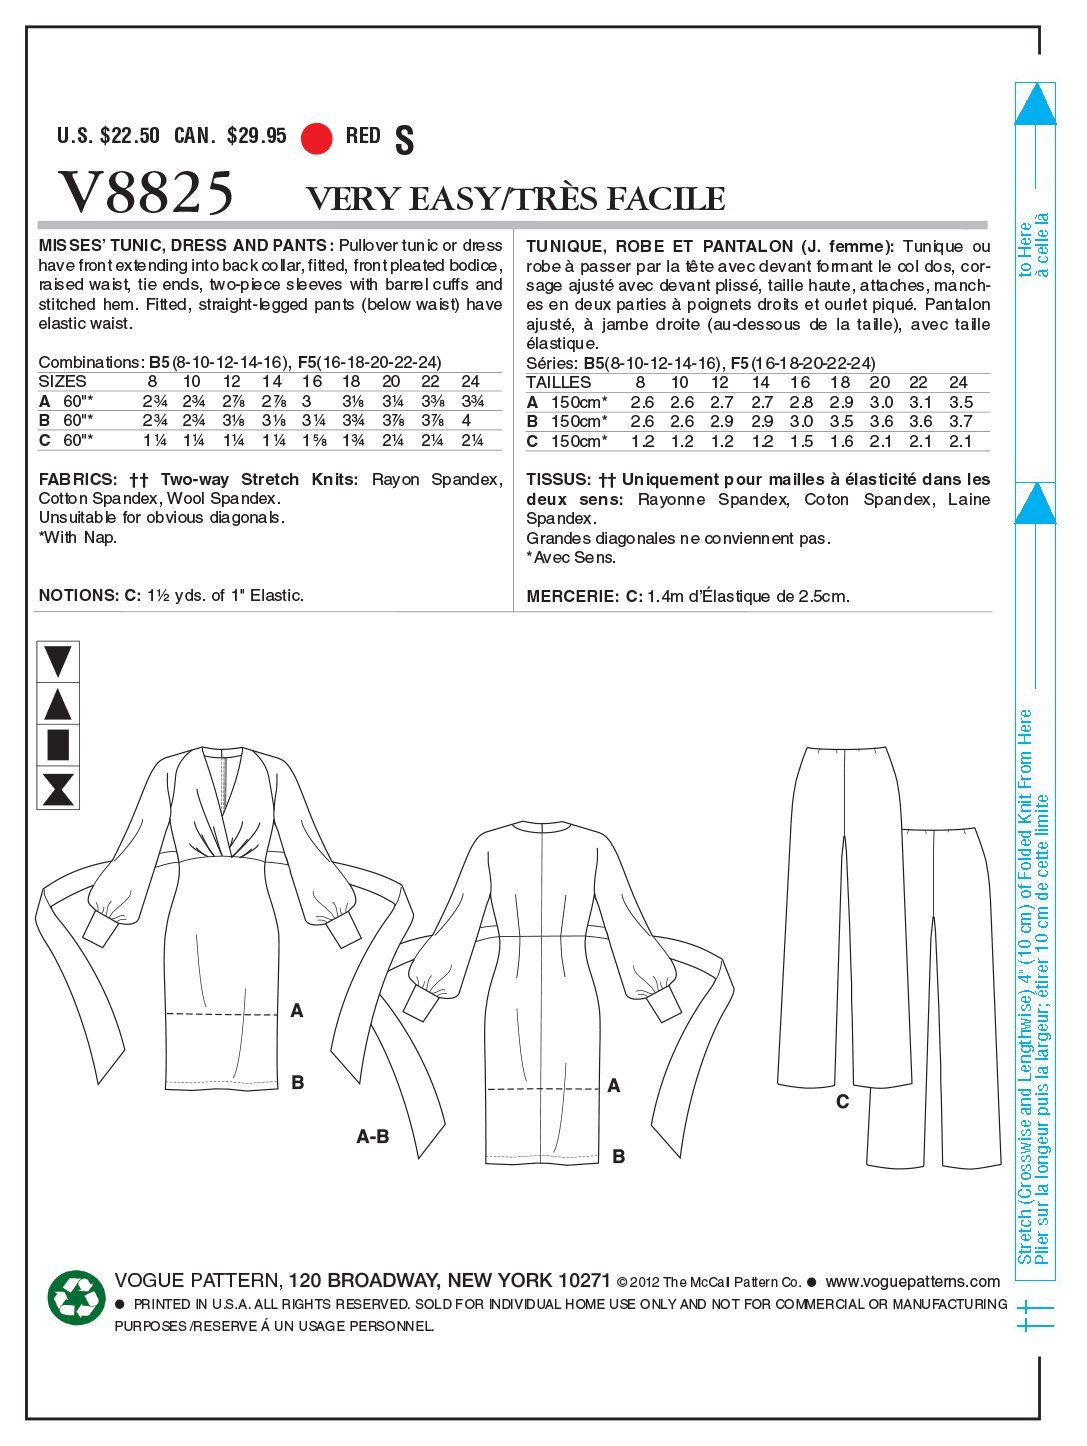 Vogue Patterns V8825 - Patrones de costura para túnicas, vestidos y ...